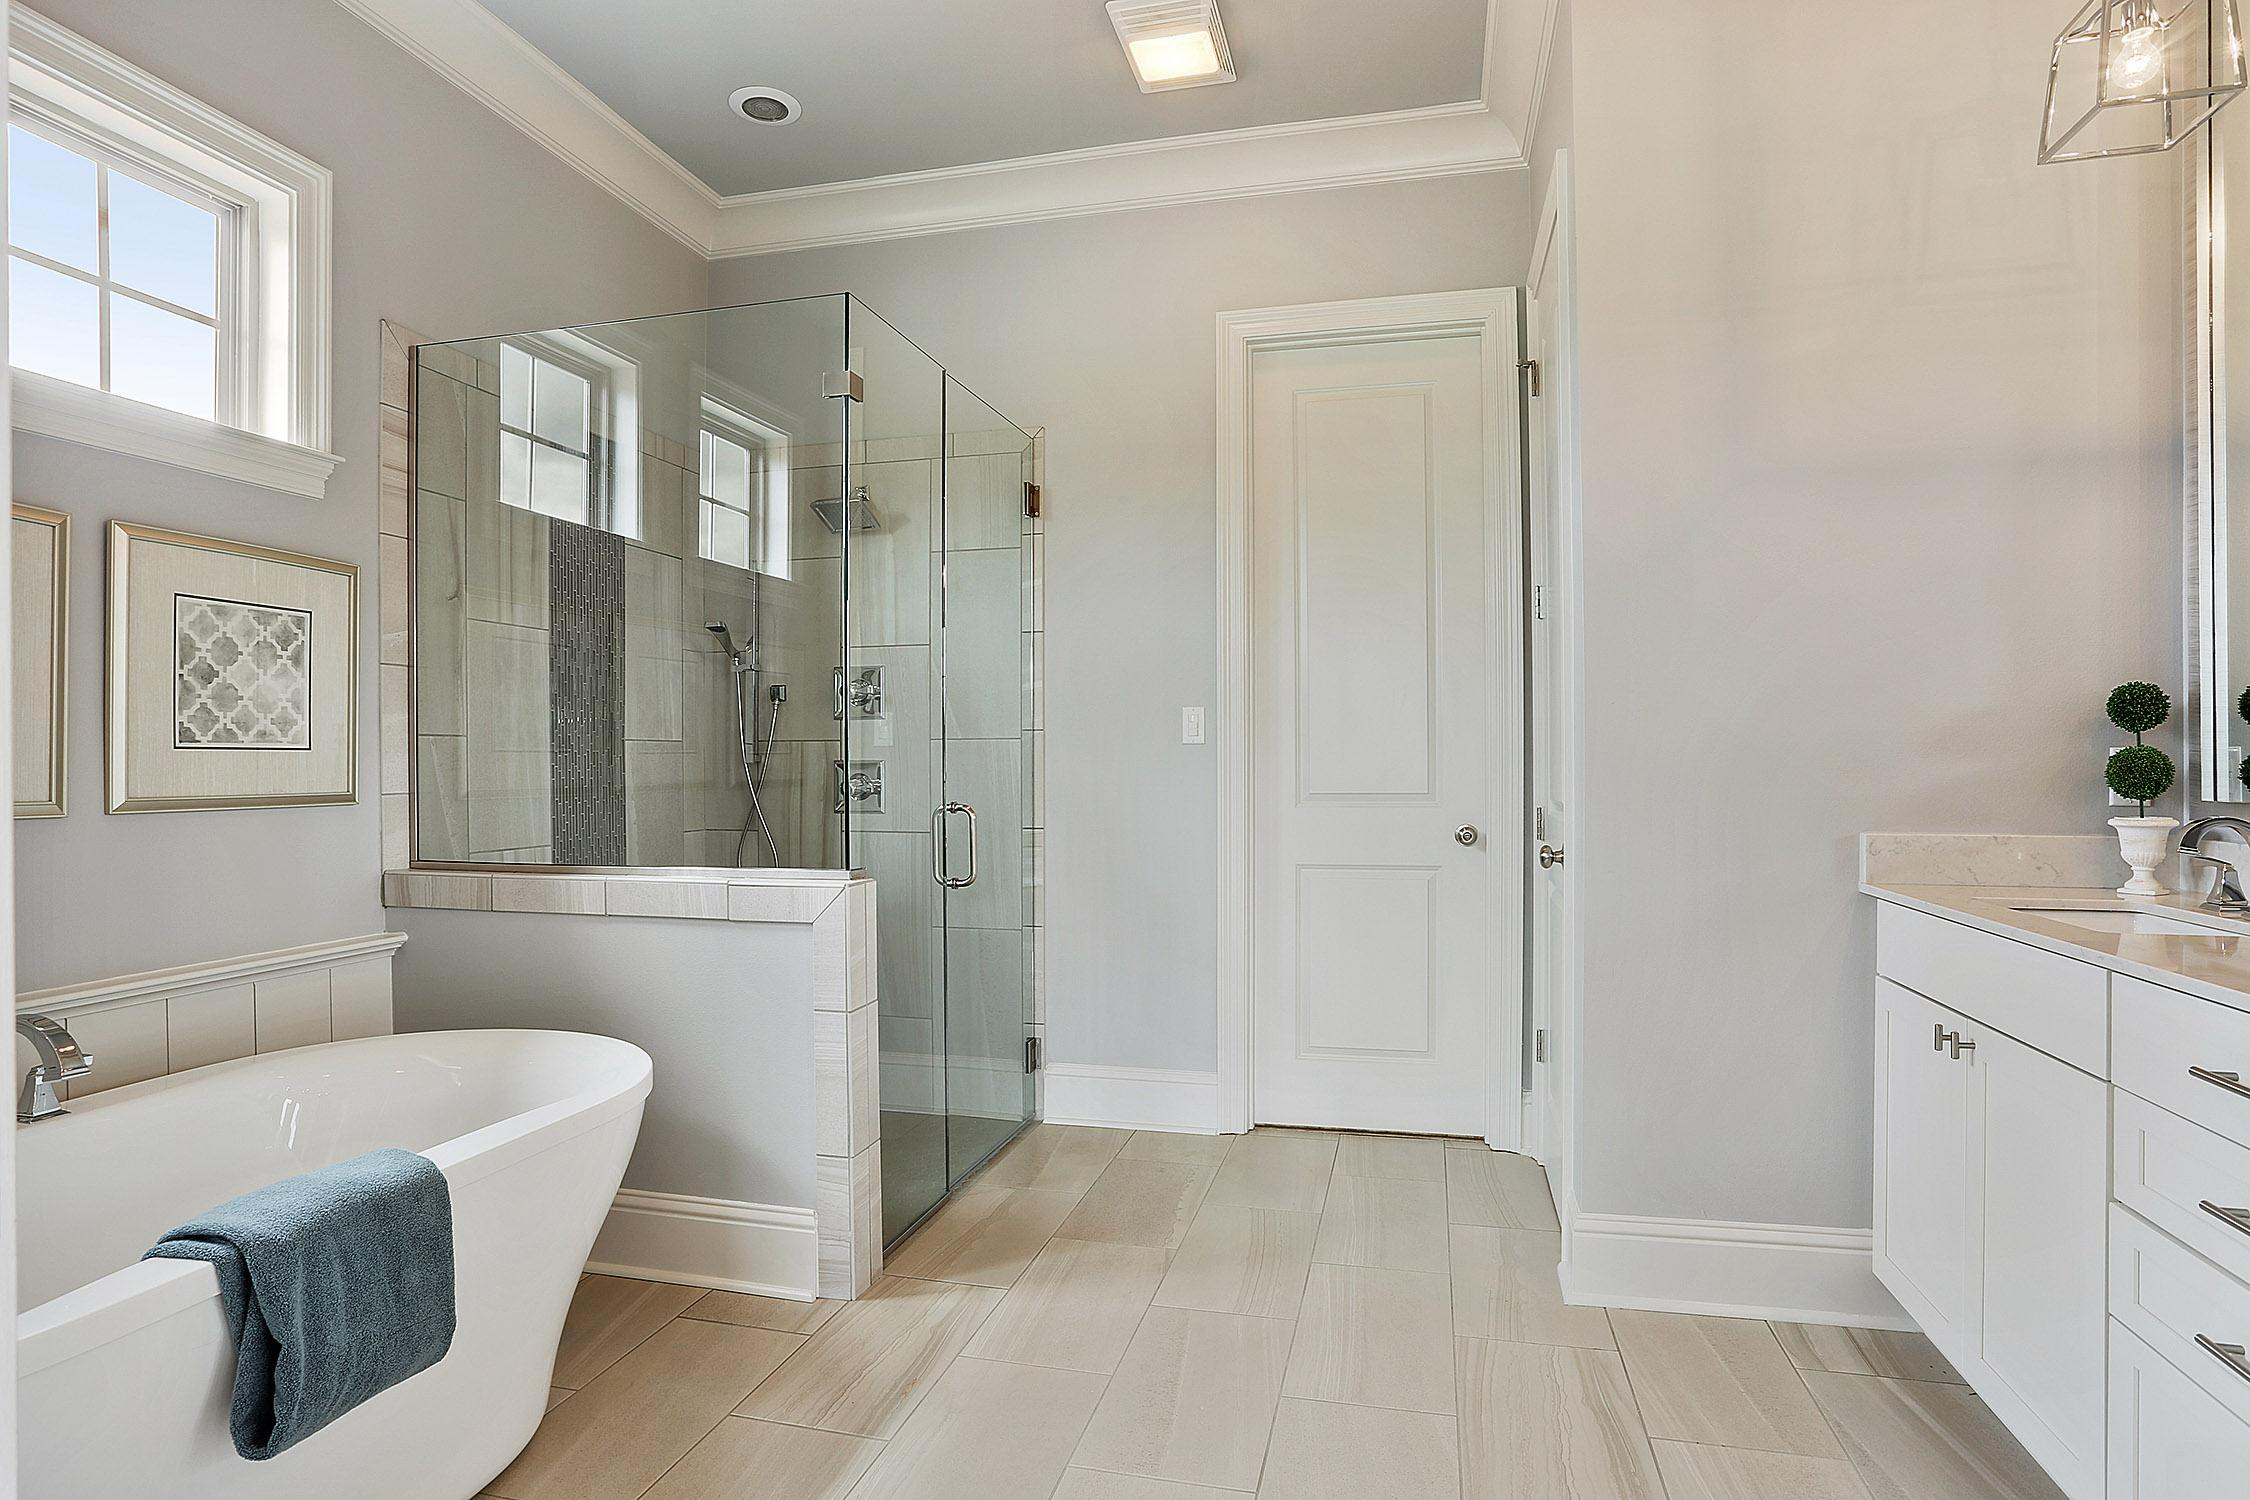 Bathroom featured in the Caroline B By Highland Homes in New Orleans, LA